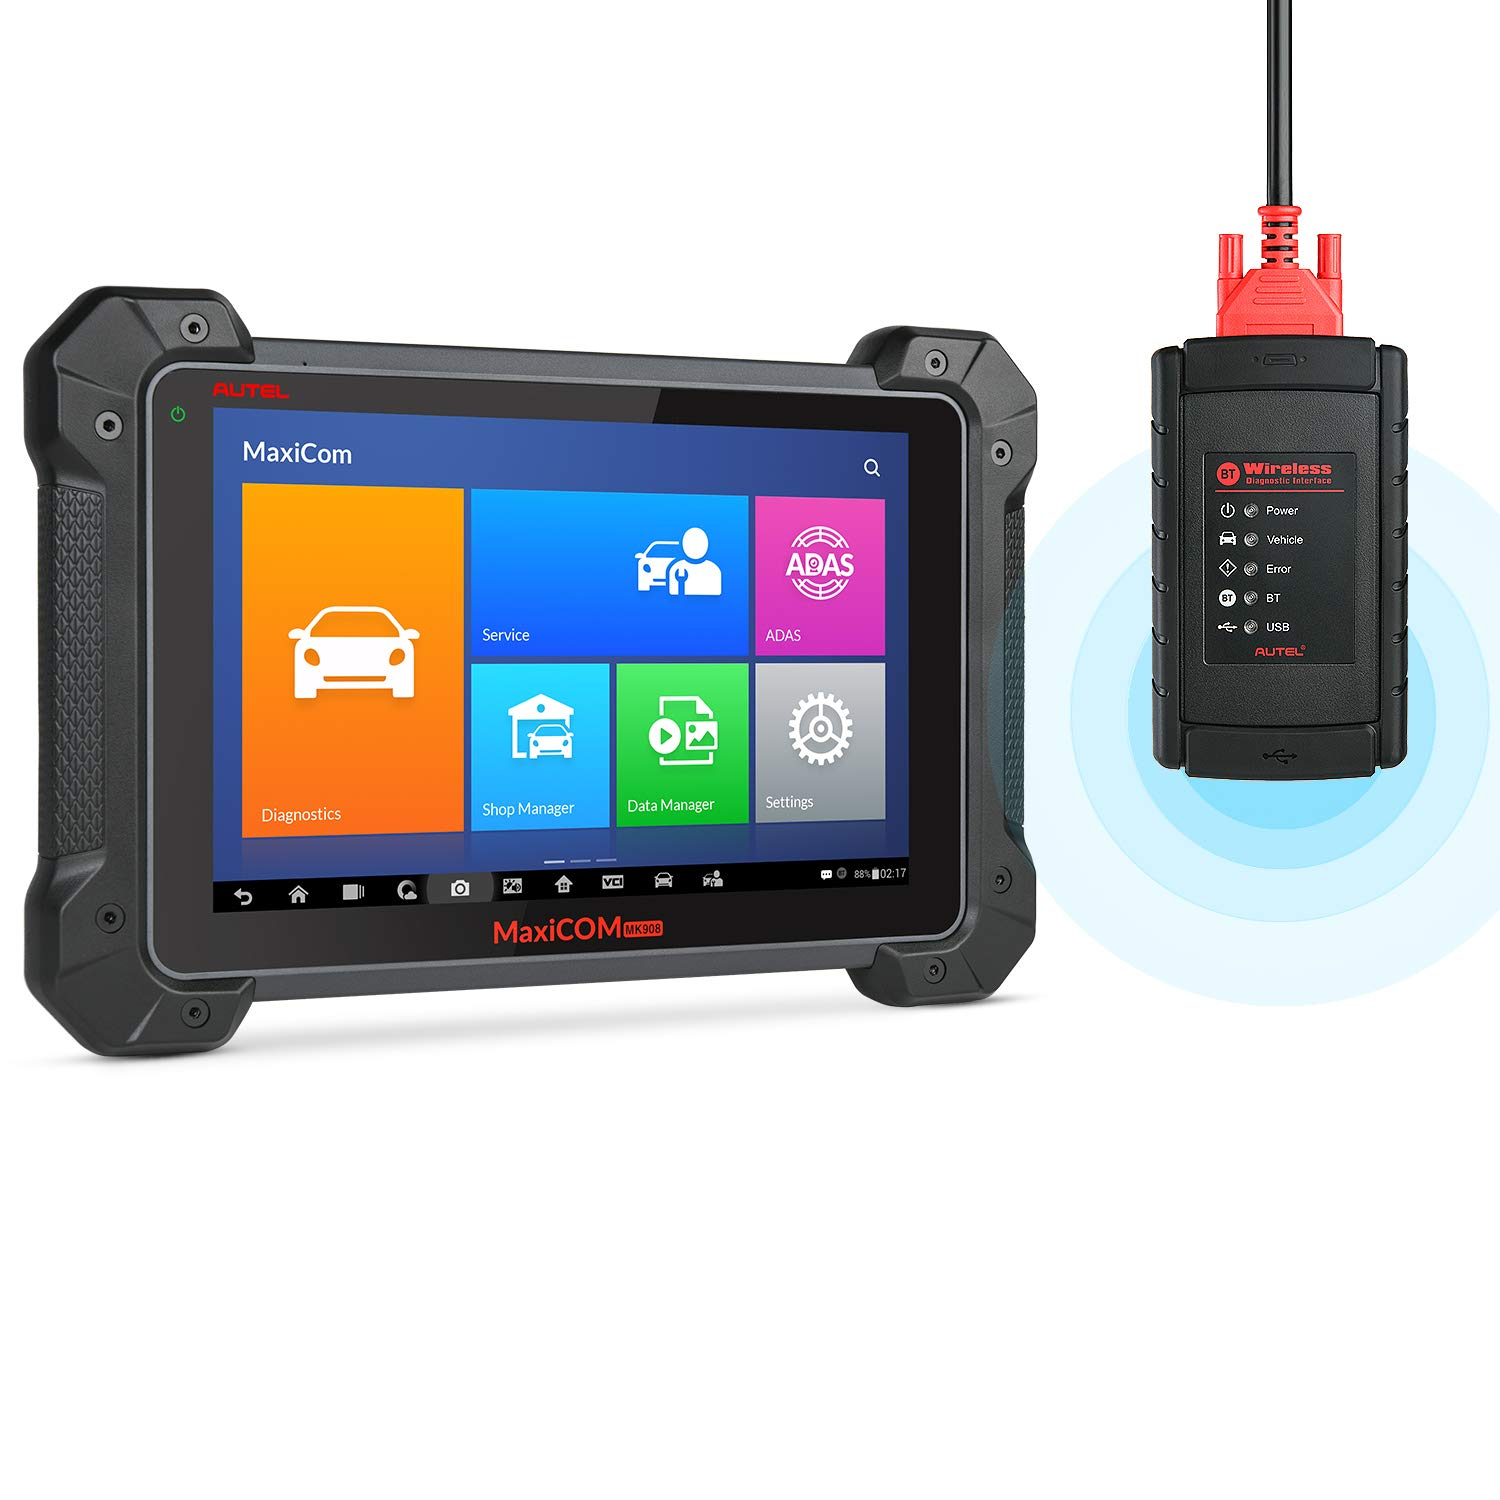 Autel MK908 Diagnostic Scanner (Upgraded MaxiSys MS908 MK808) with ECU  Coding, Bi-Directional Control, with Fuel Injector/Fuel sync, Active Test,  Key